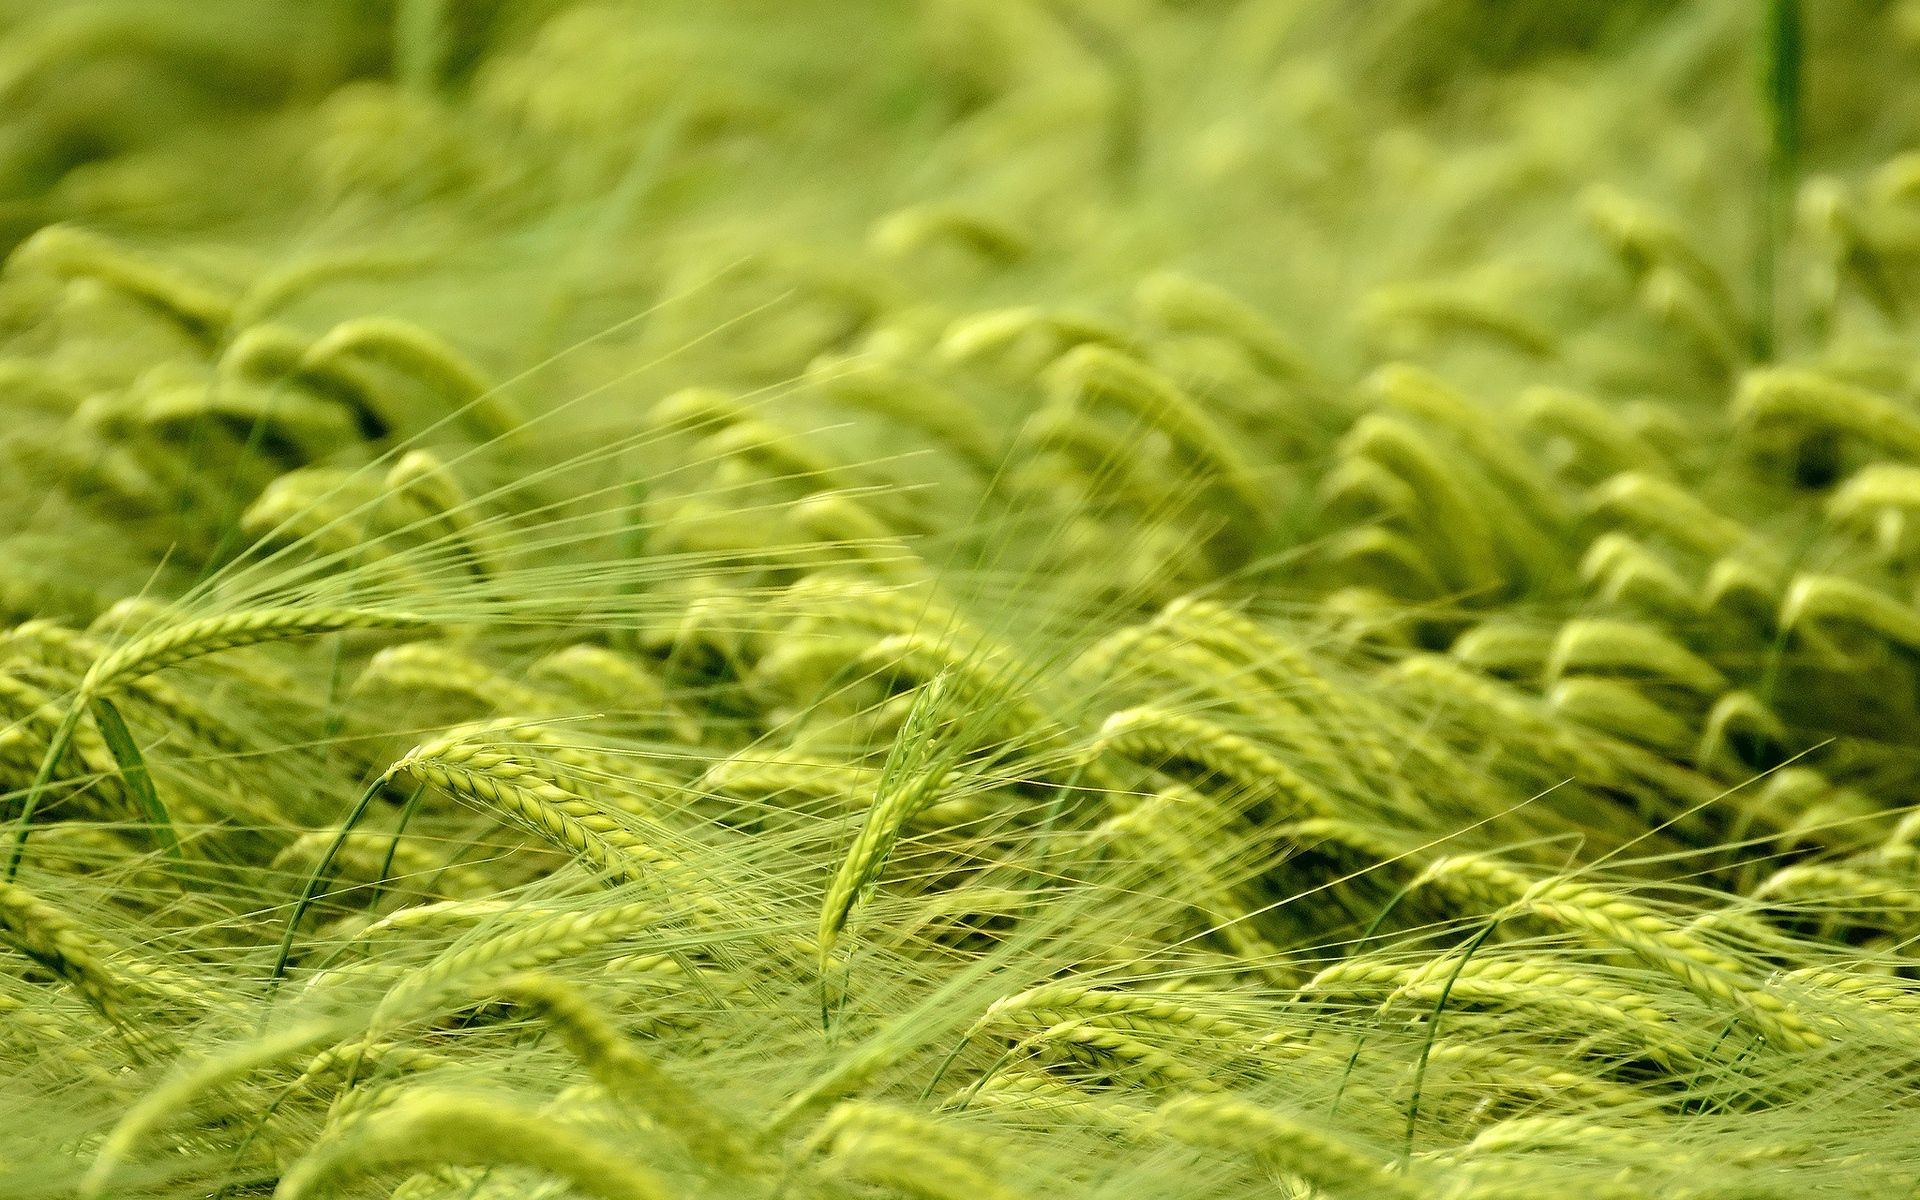 136555 download wallpaper Cones, Wheat, Macro, Field, Spikelets screensavers and pictures for free